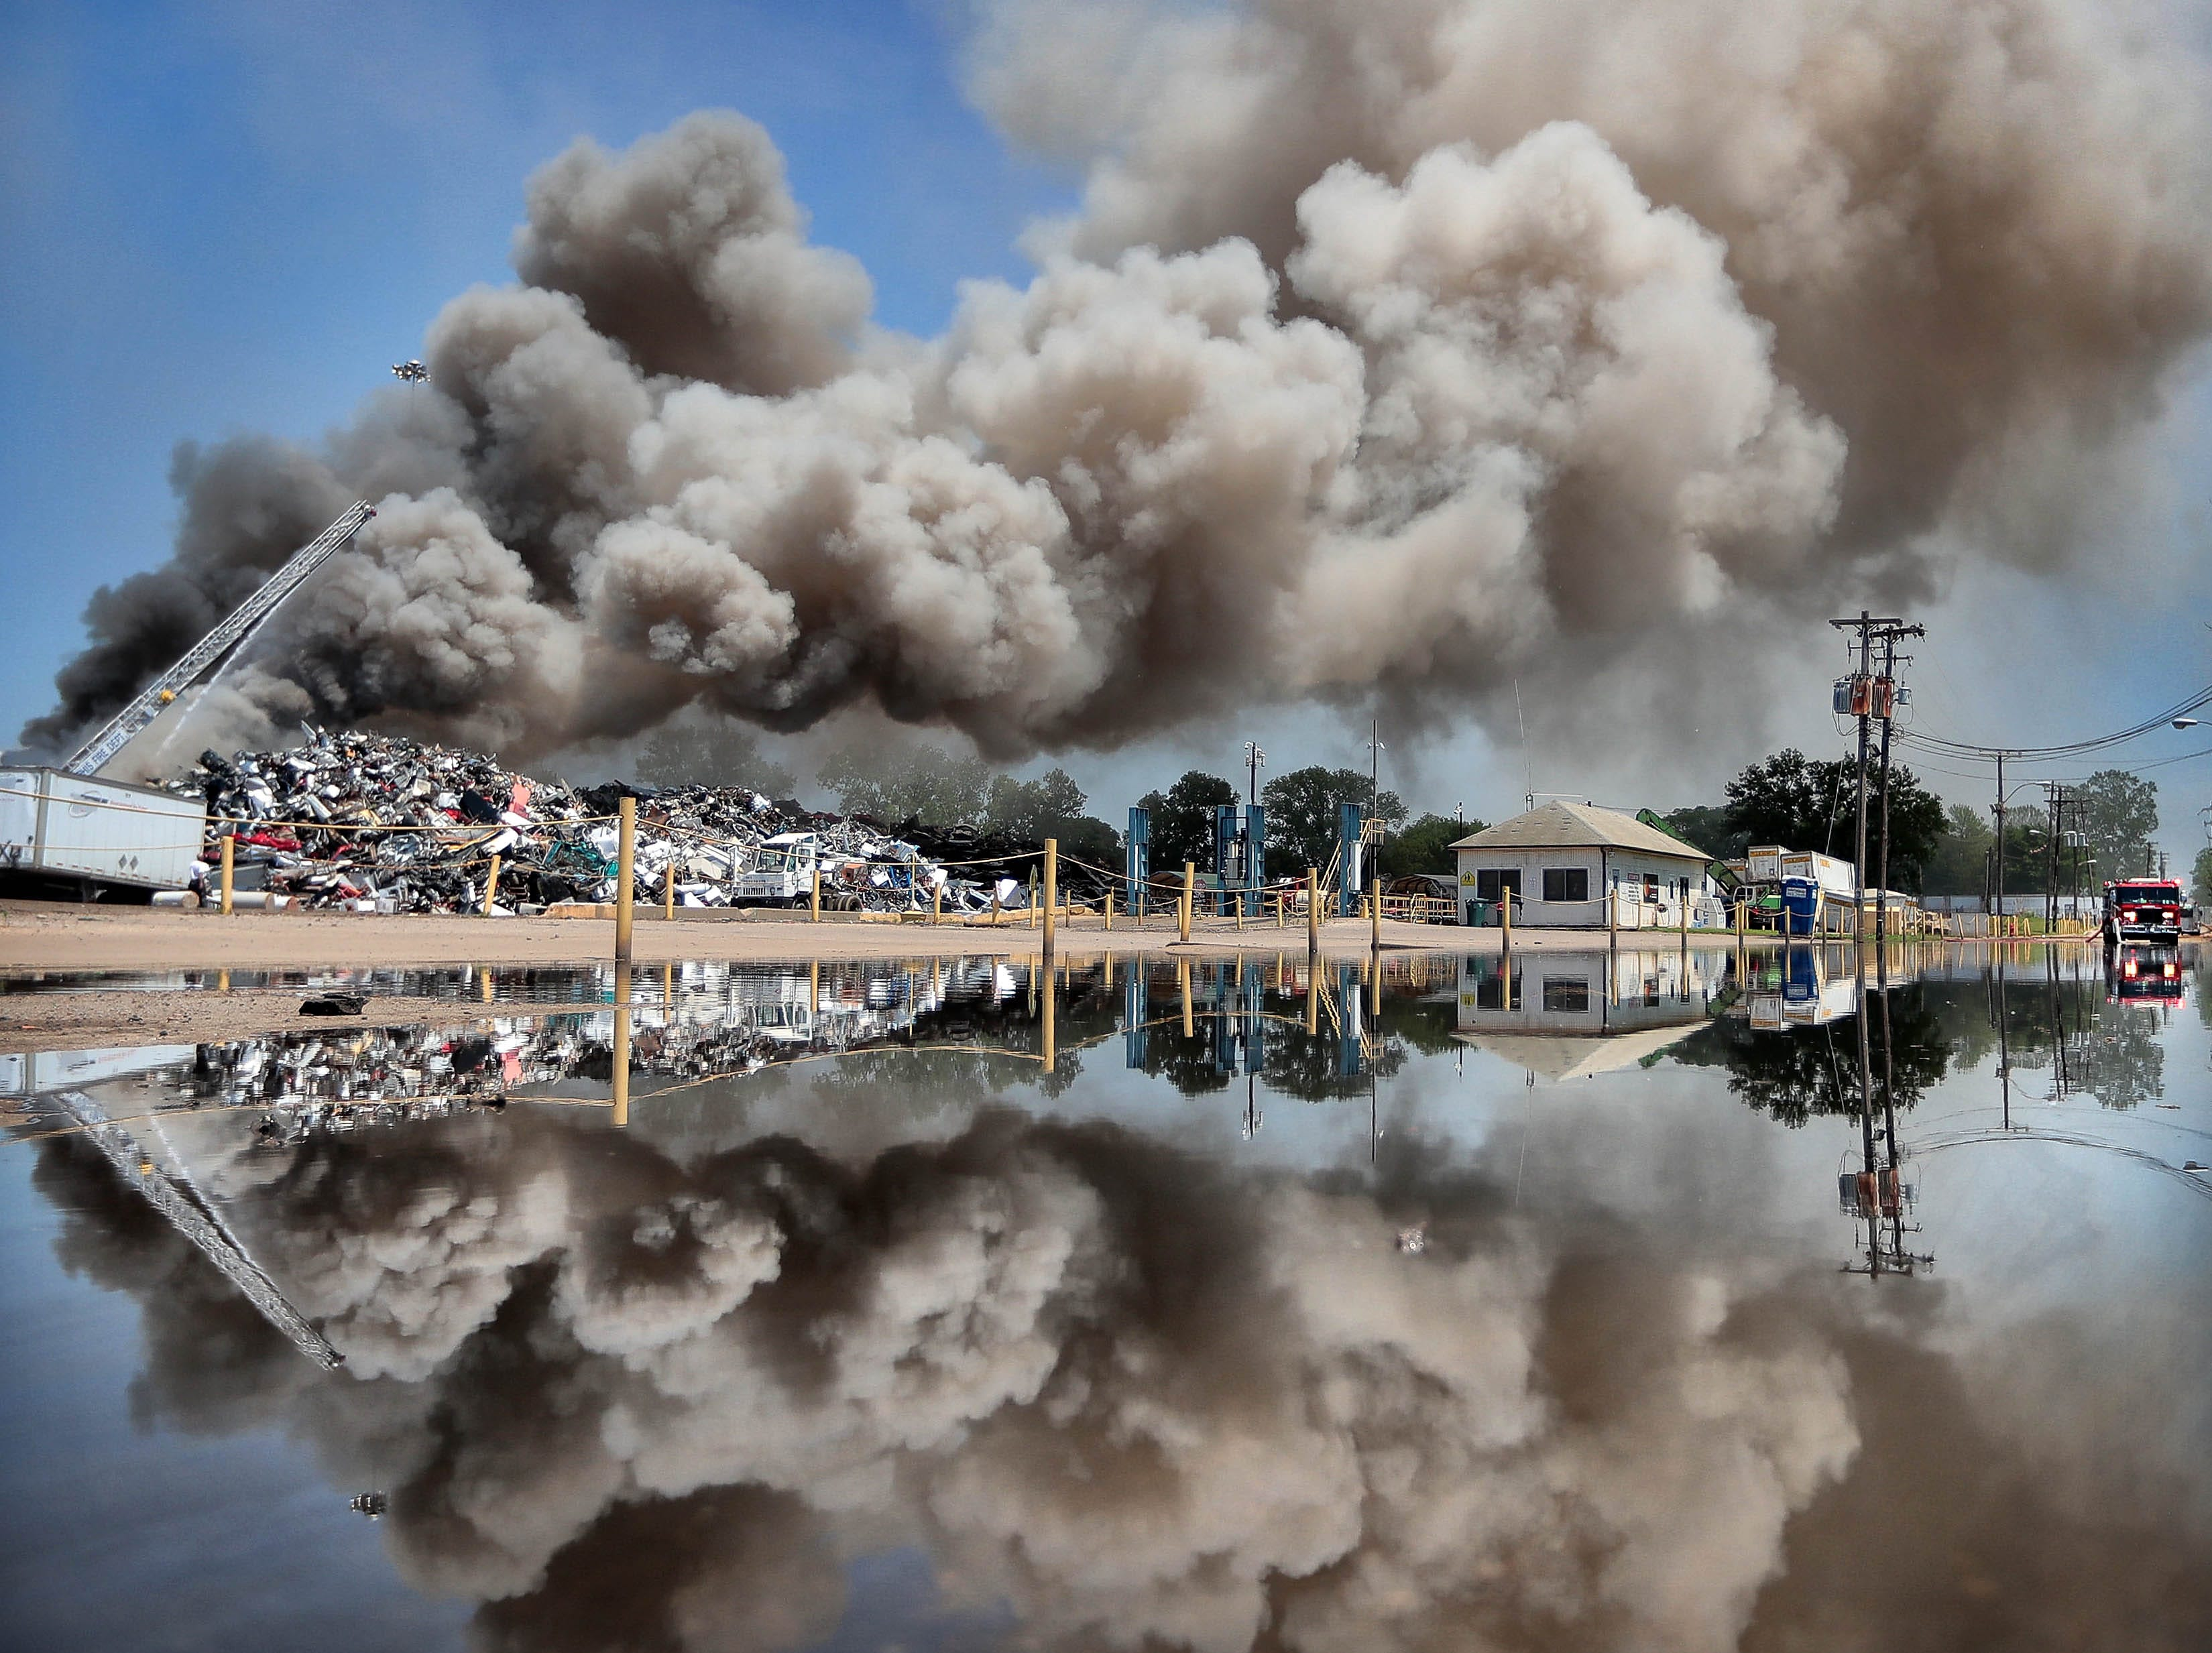 Memphis Fire Department crews battle a stubborn fire Sunday at a metal recycling business north of Downtown. The department sent multiple crews to the fire at Omni Source, but struggled to contain the blaze that continued to flare up with small explosions most of the day.